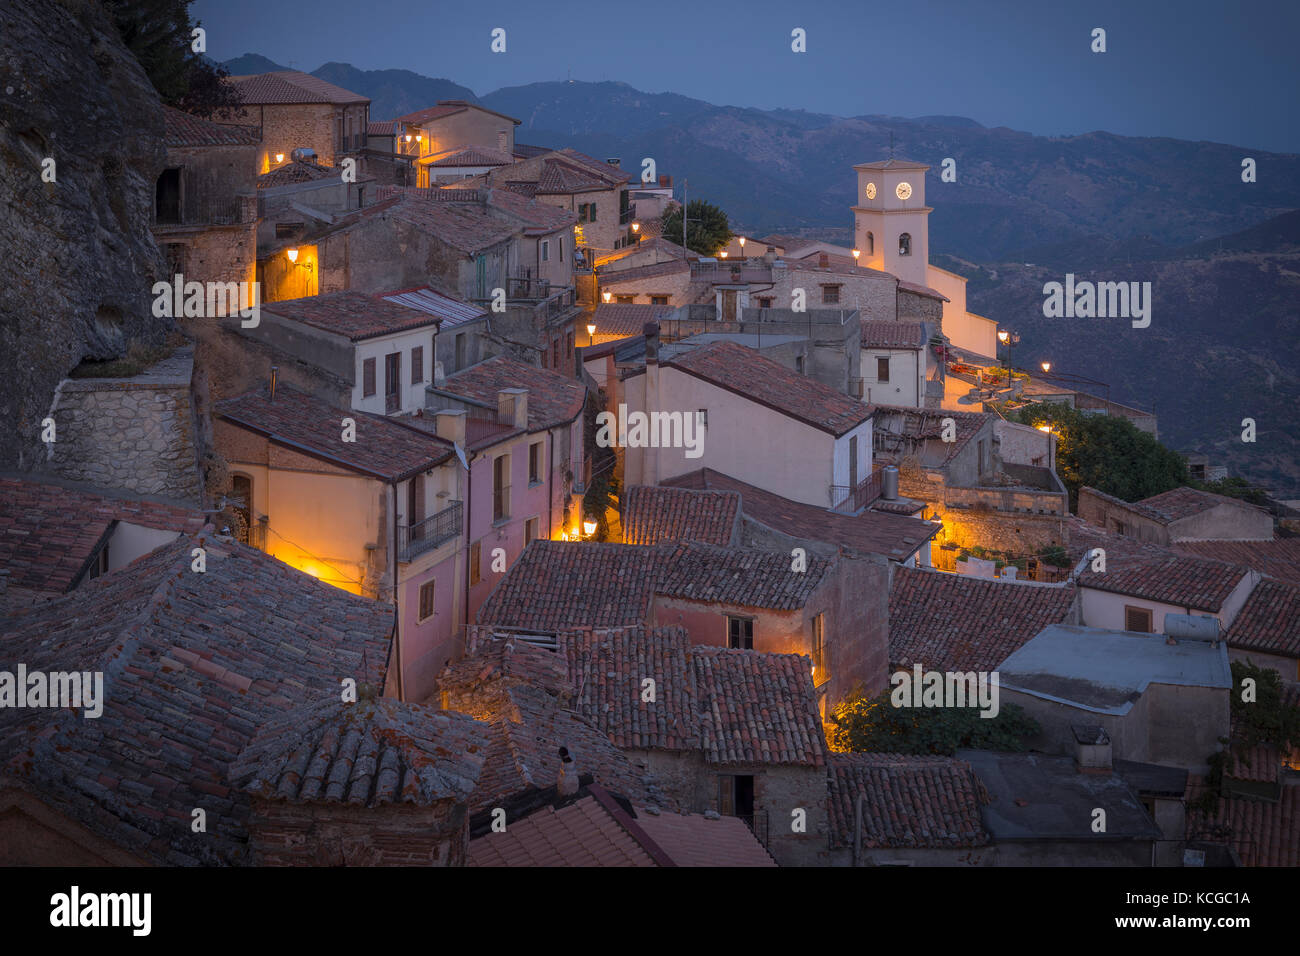 Hilltown of Bova, Calabria, Italy. - Stock Image